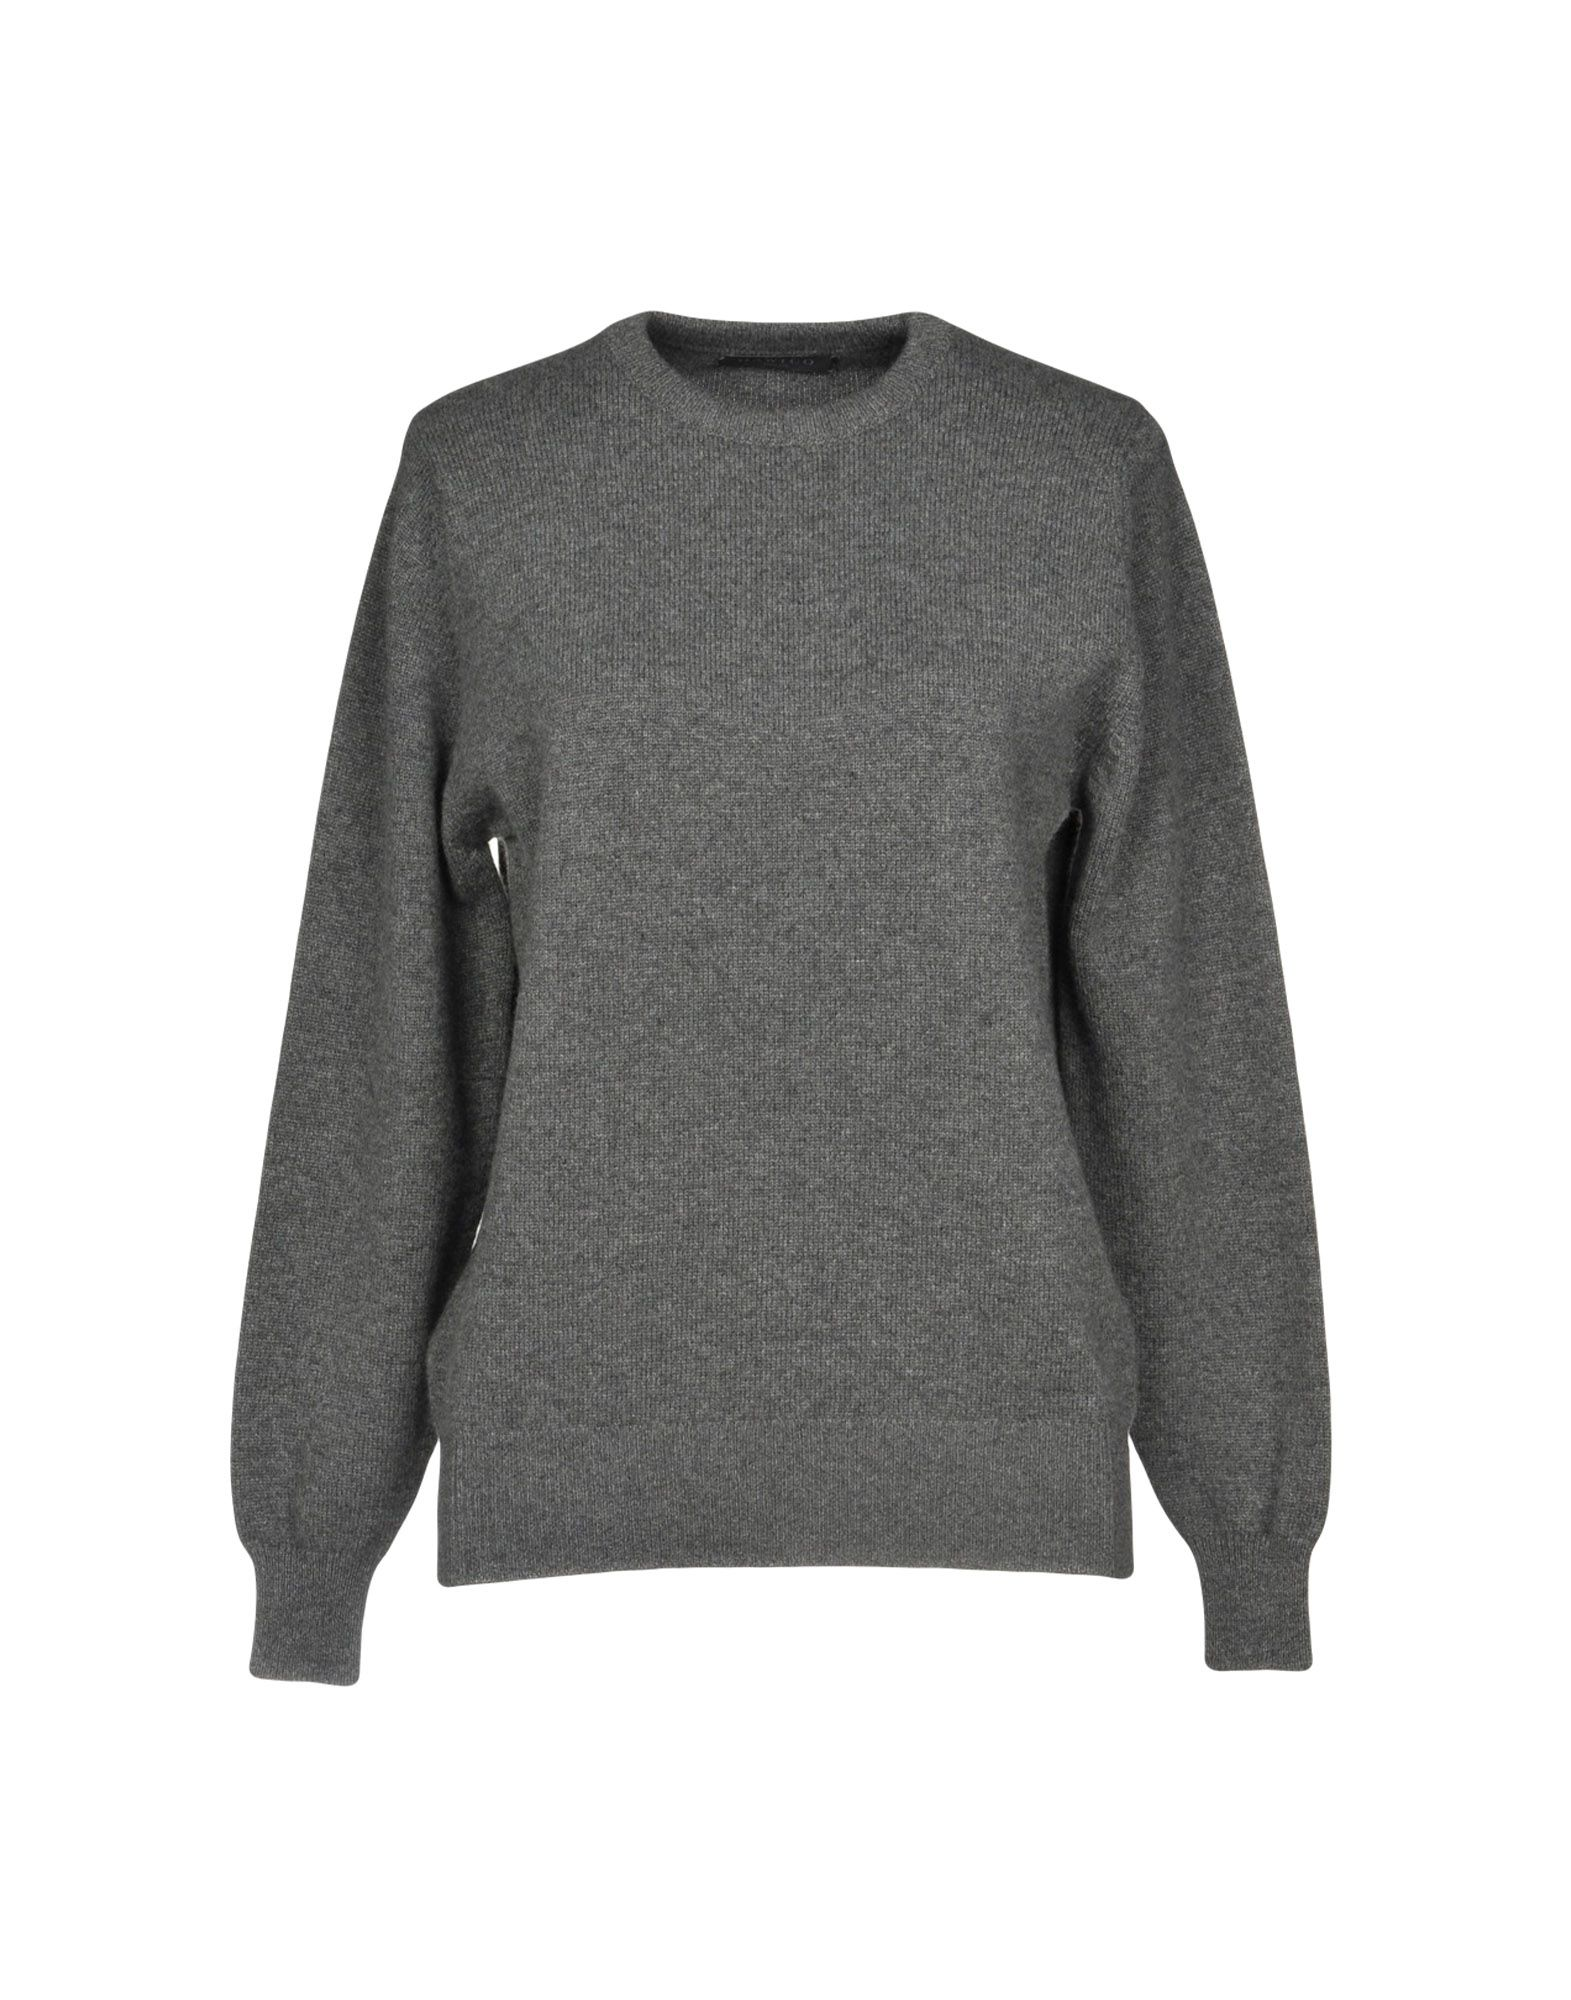 HAWICO Cashmere Blend in Grey